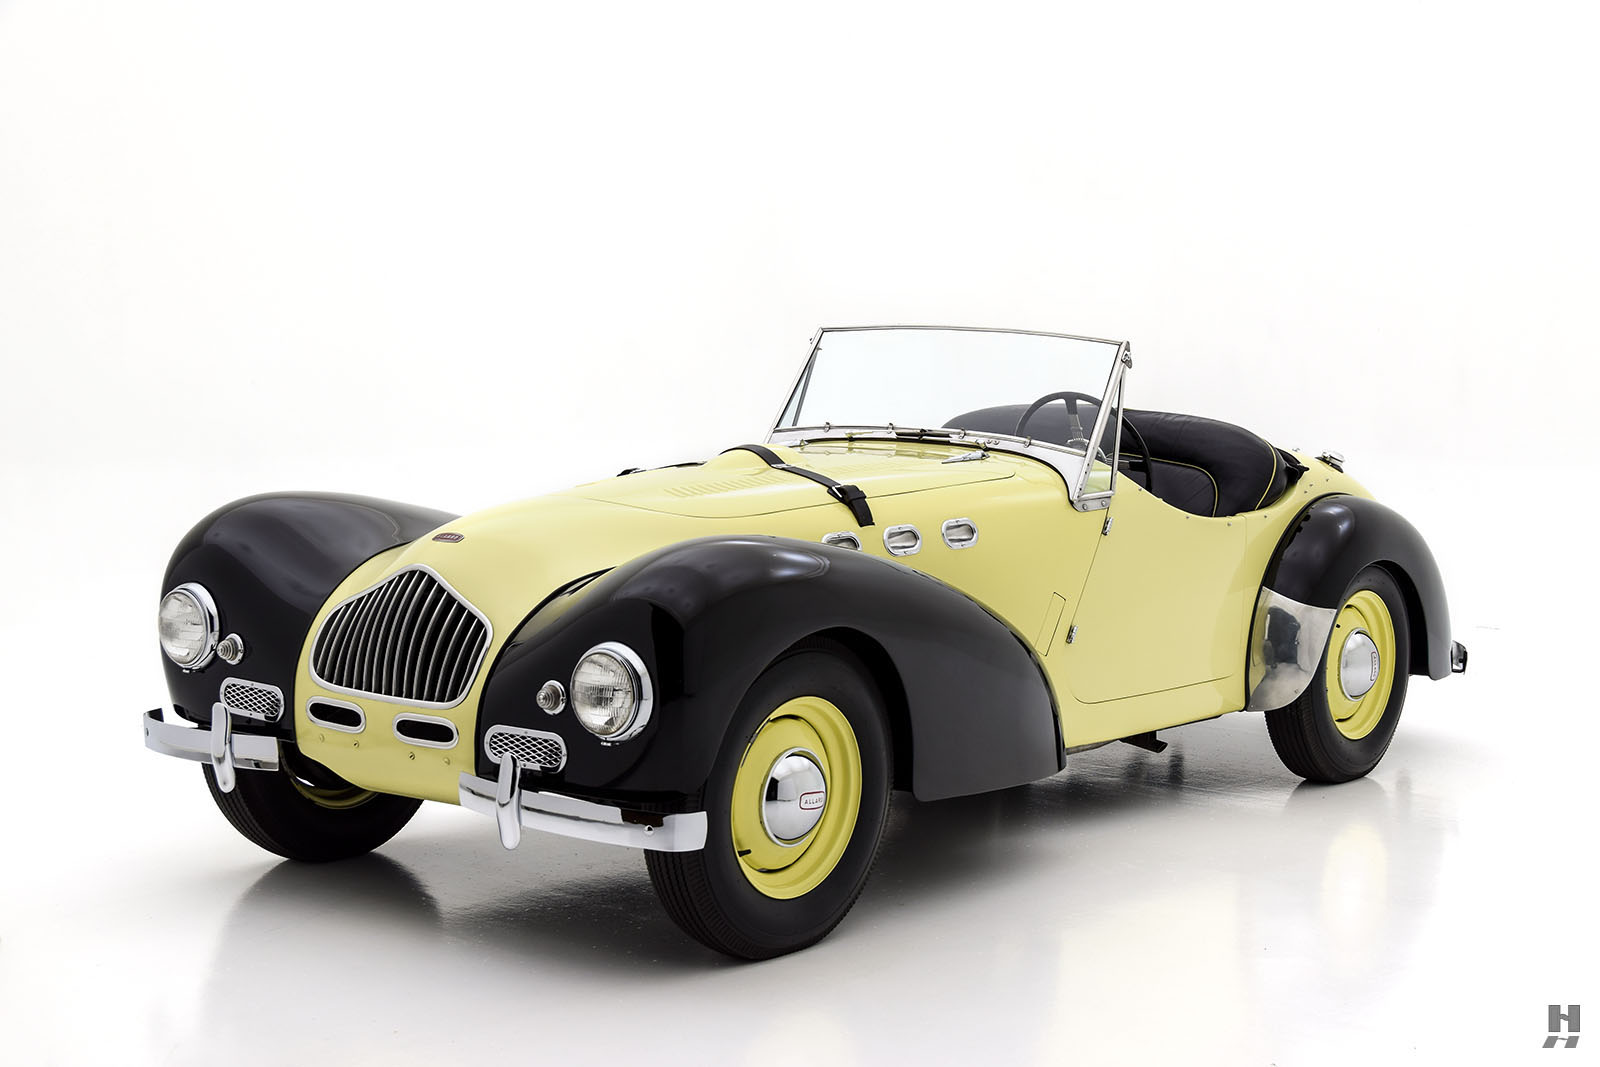 1951 Allard K-2 Roadster For Sale | Buy Classic Cars | Hyman LTD